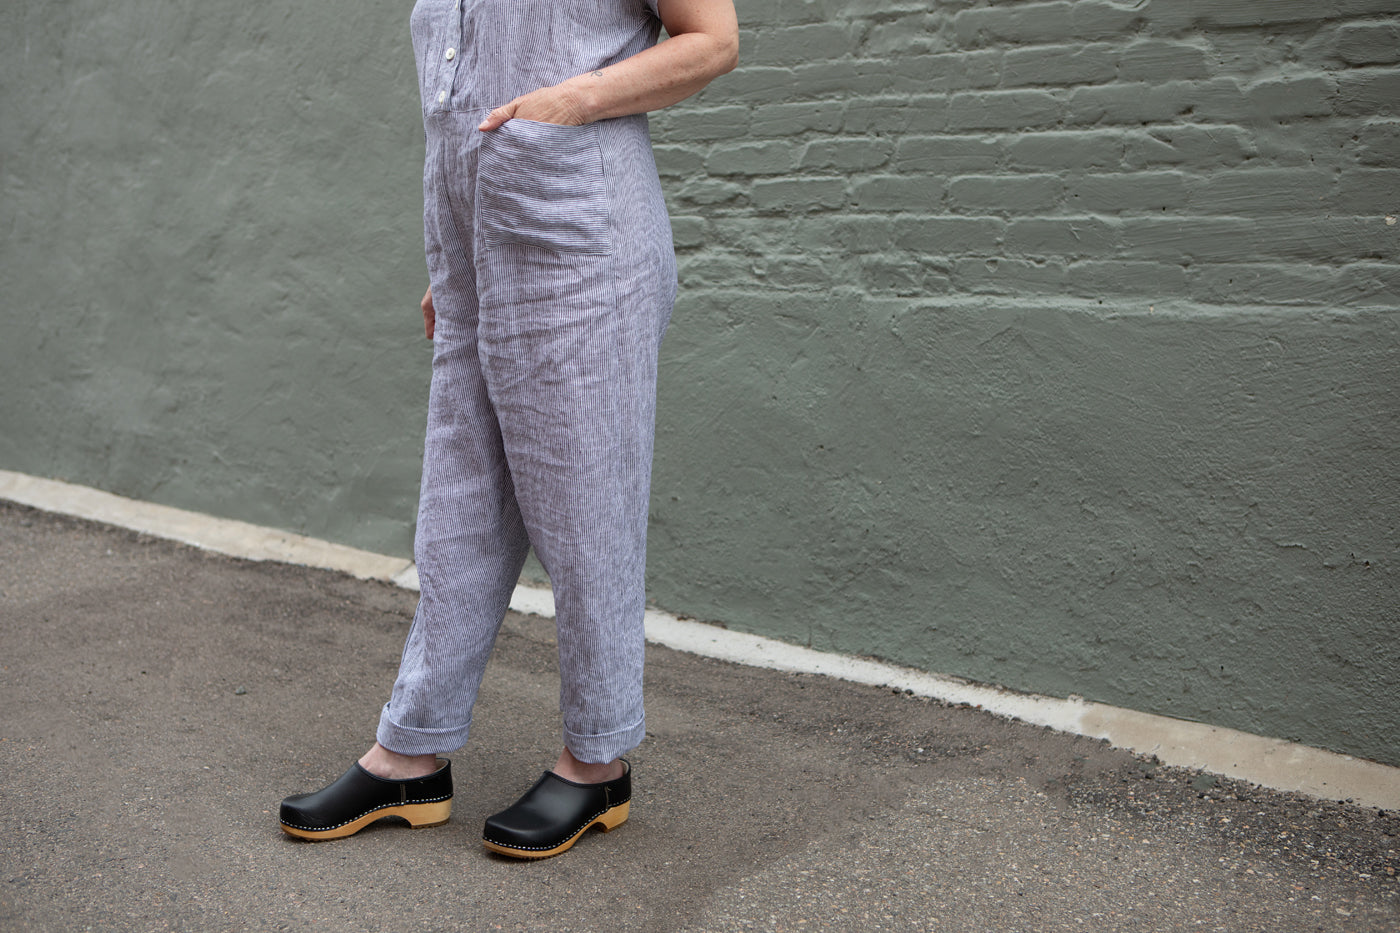 A close-up image of the bottom of Christina's linen jumpsuit. Her hand is in her pocket and she wears black clogs with wooden soles.